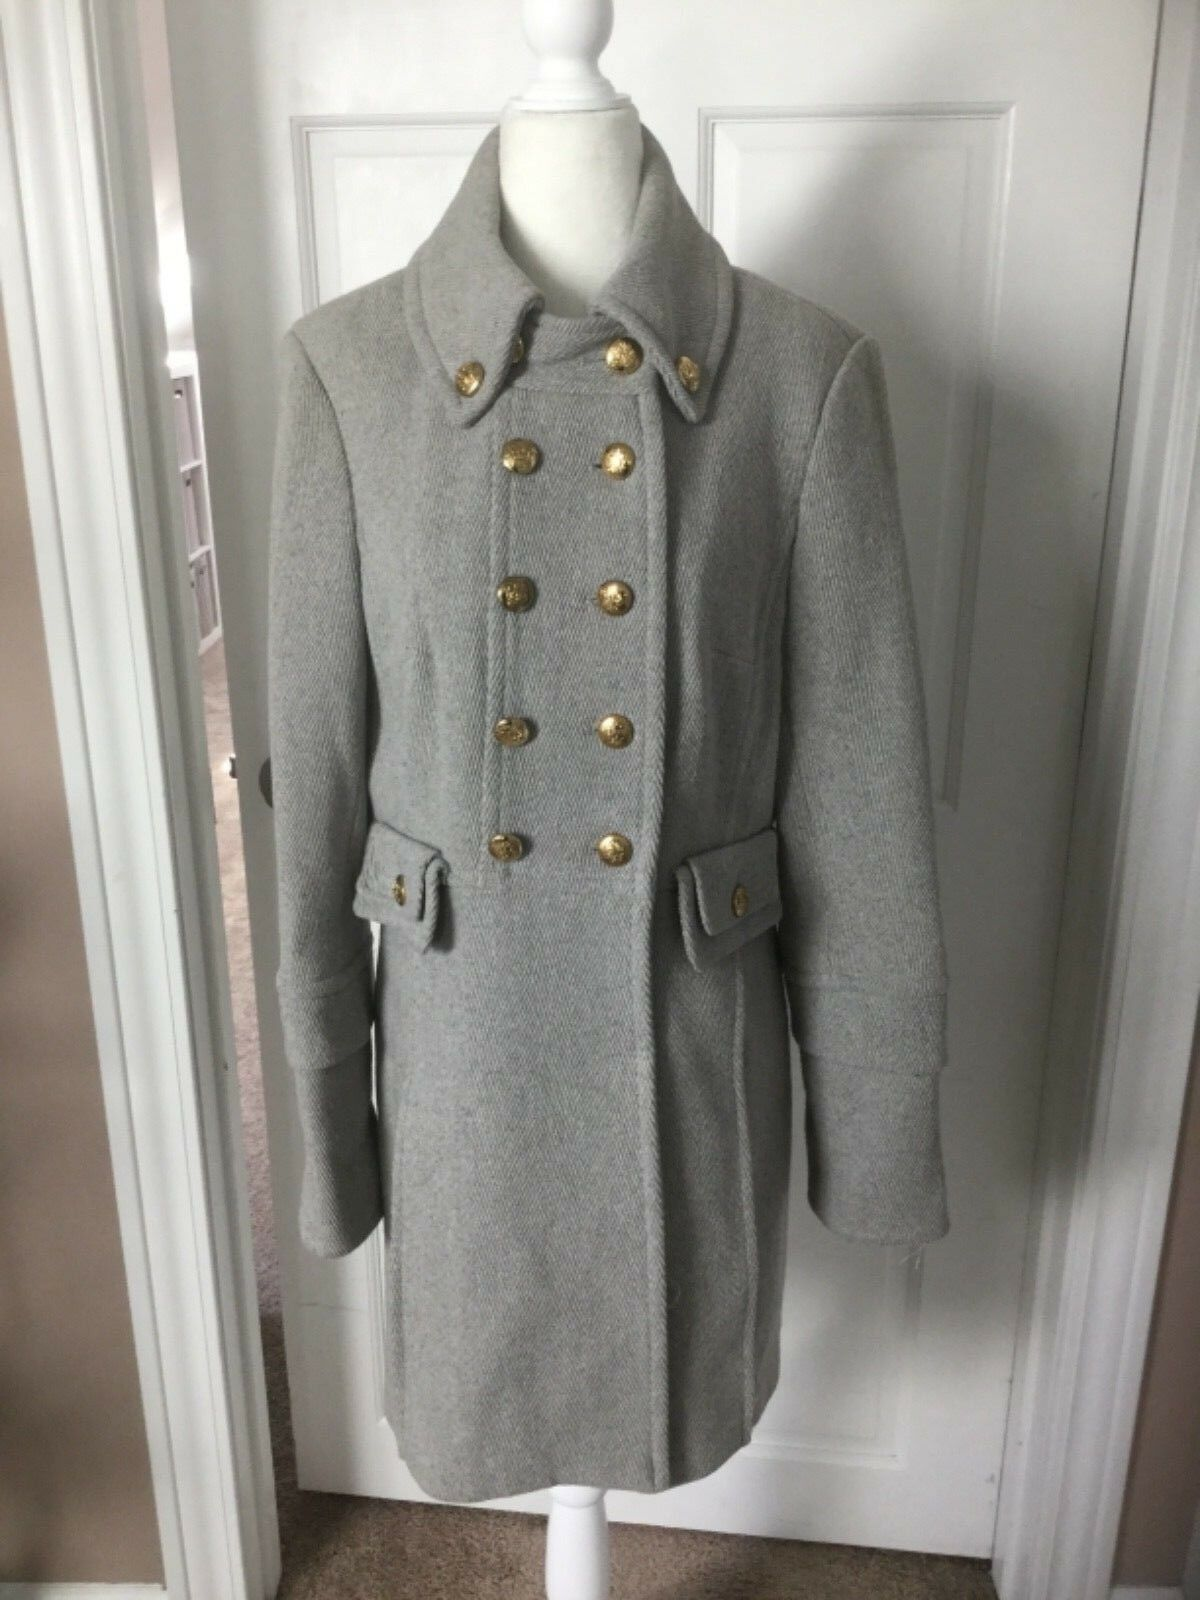 NWOT Bebe Herringbone Grey Wool Military Style Coat Size L